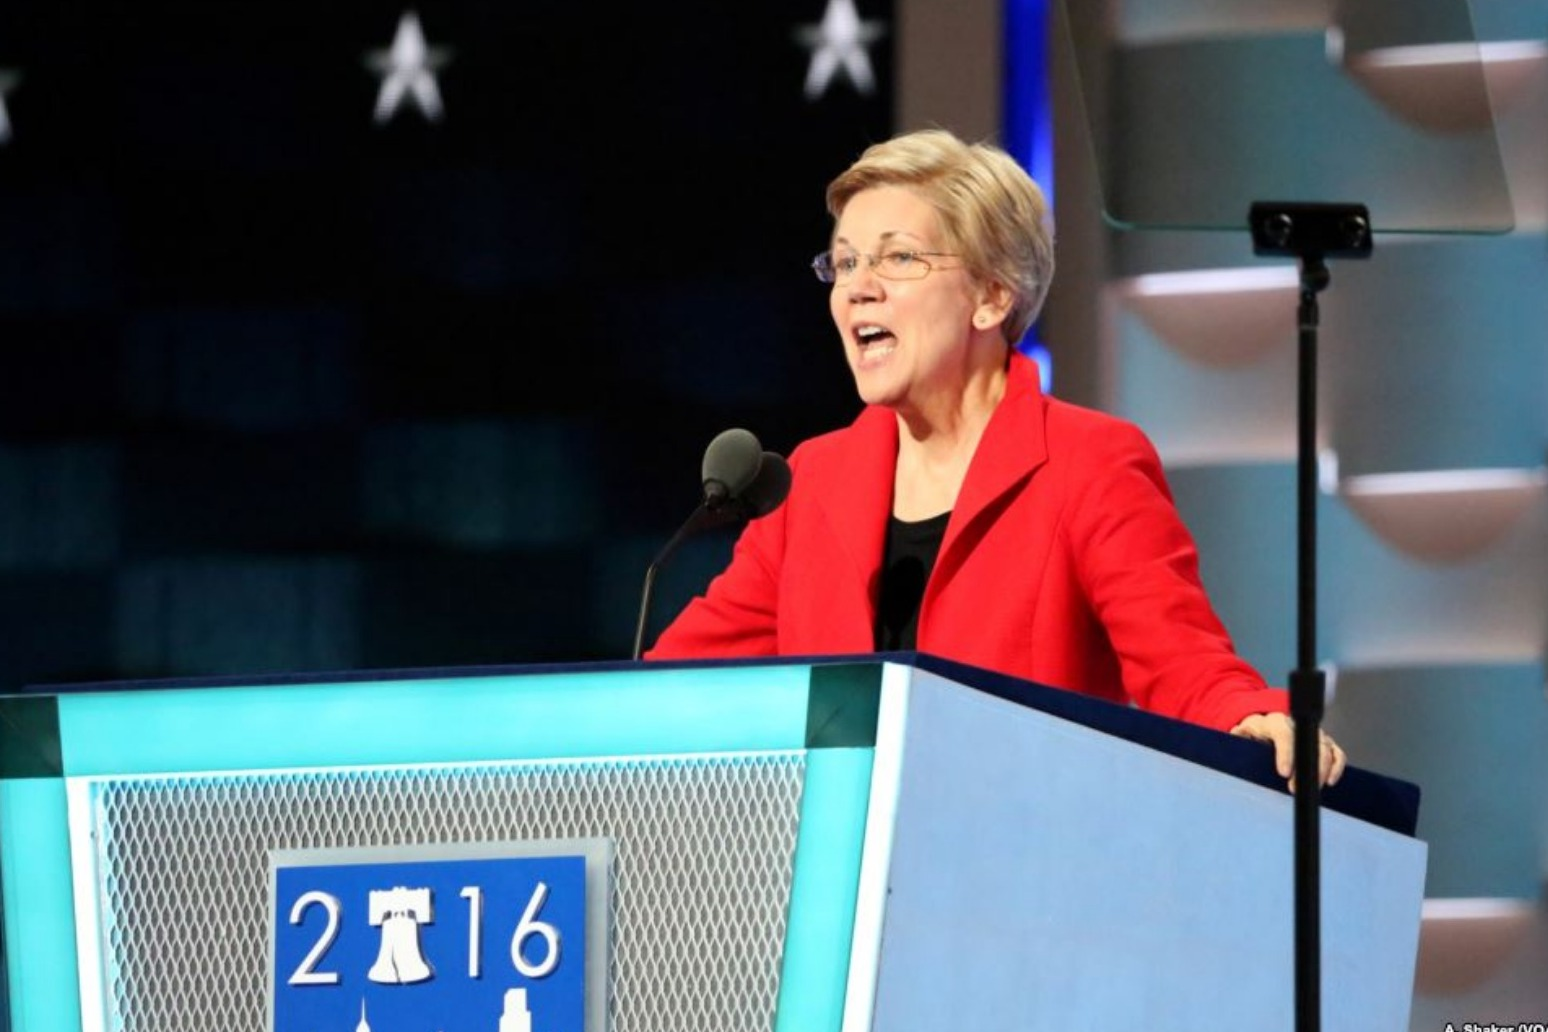 U.S. Sen. Warren launches 2020 campaign, sounds note of economic equality